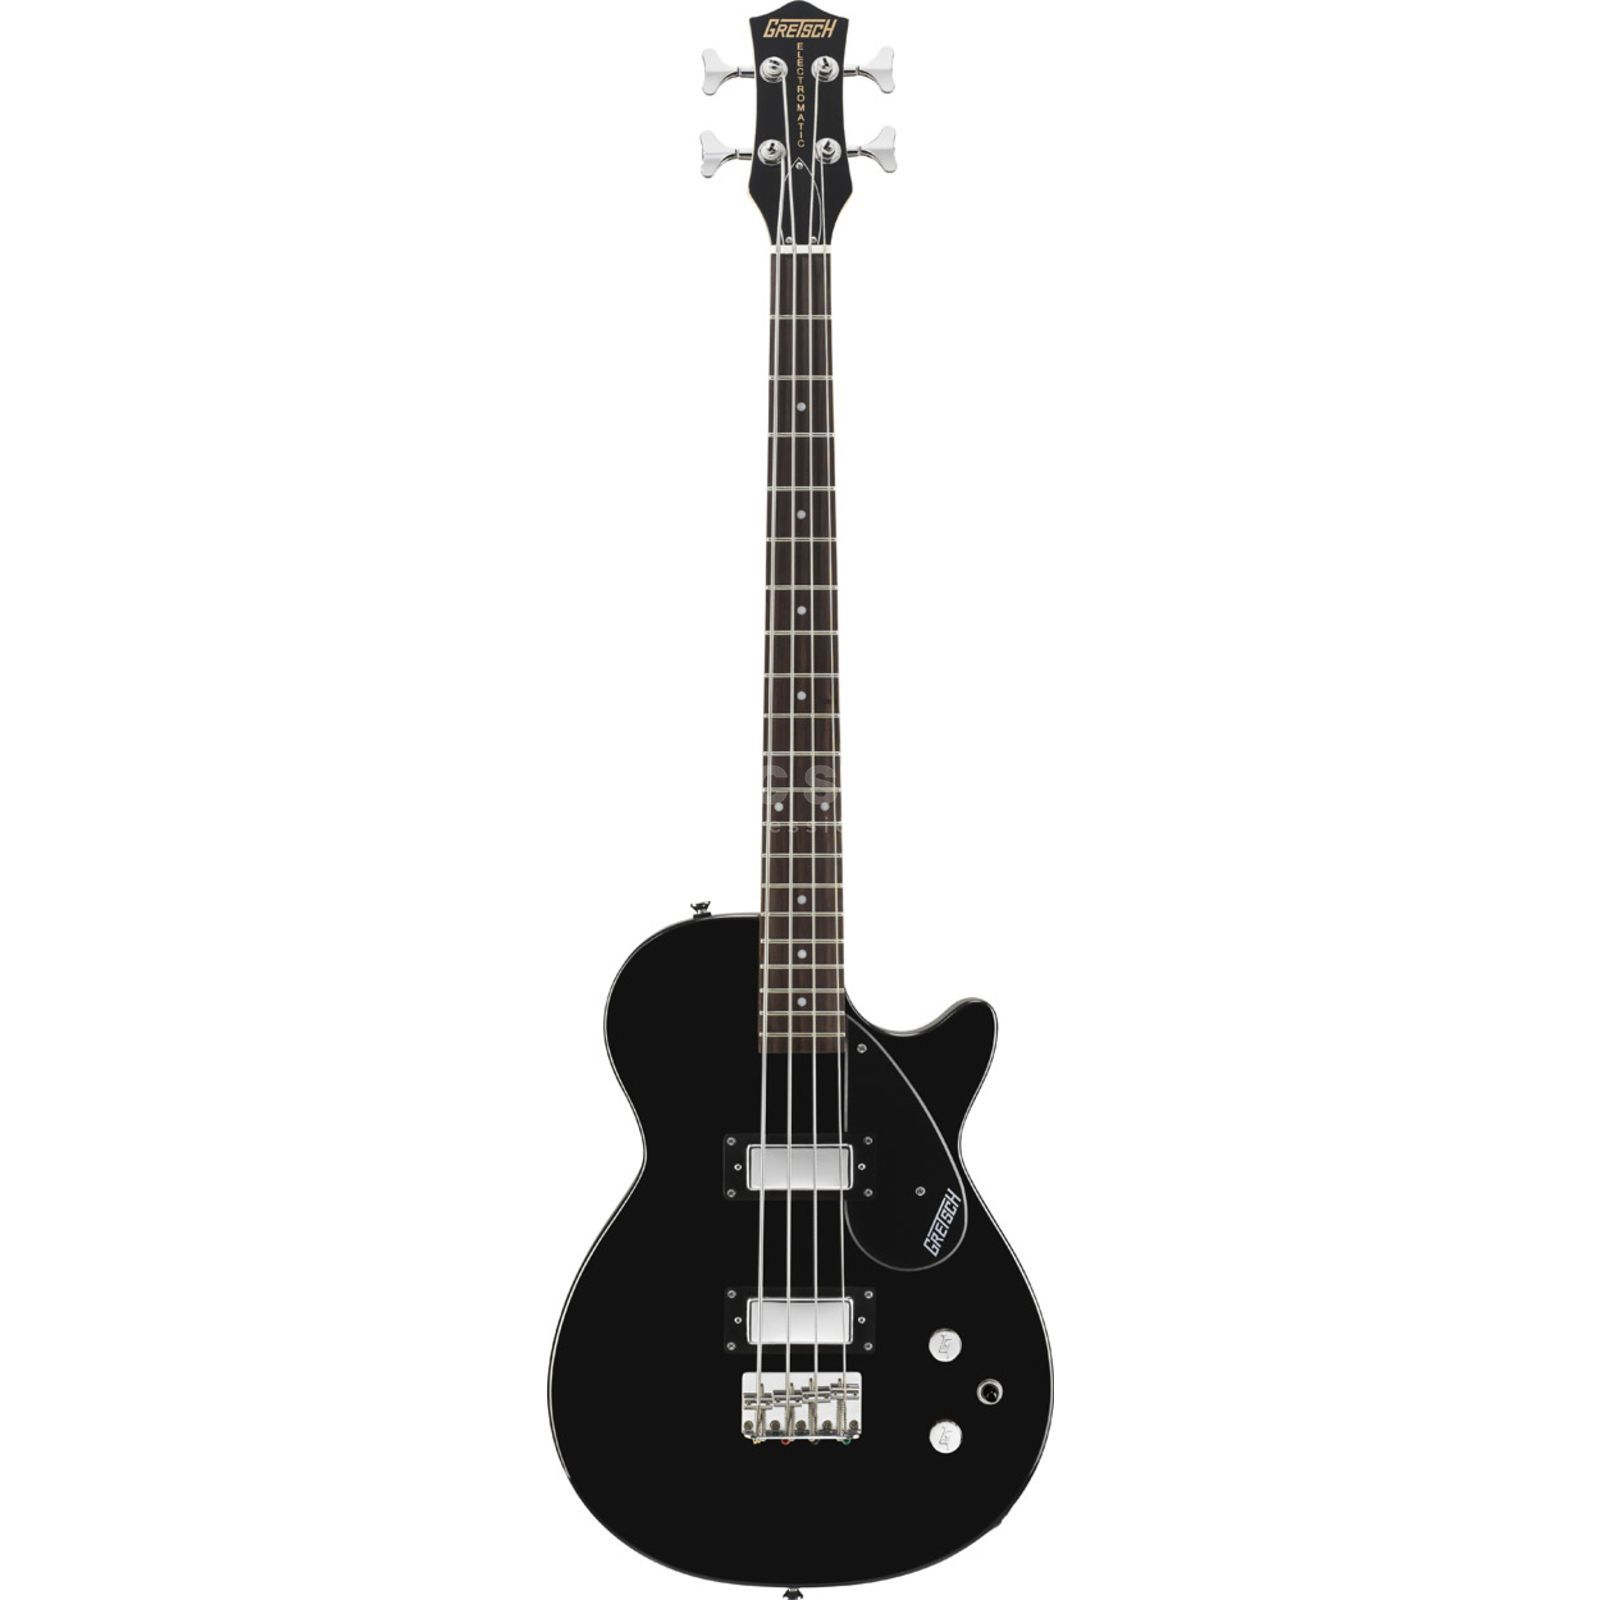 Gretsch G2220 Junior Jet Bass II BK Black Produktbild